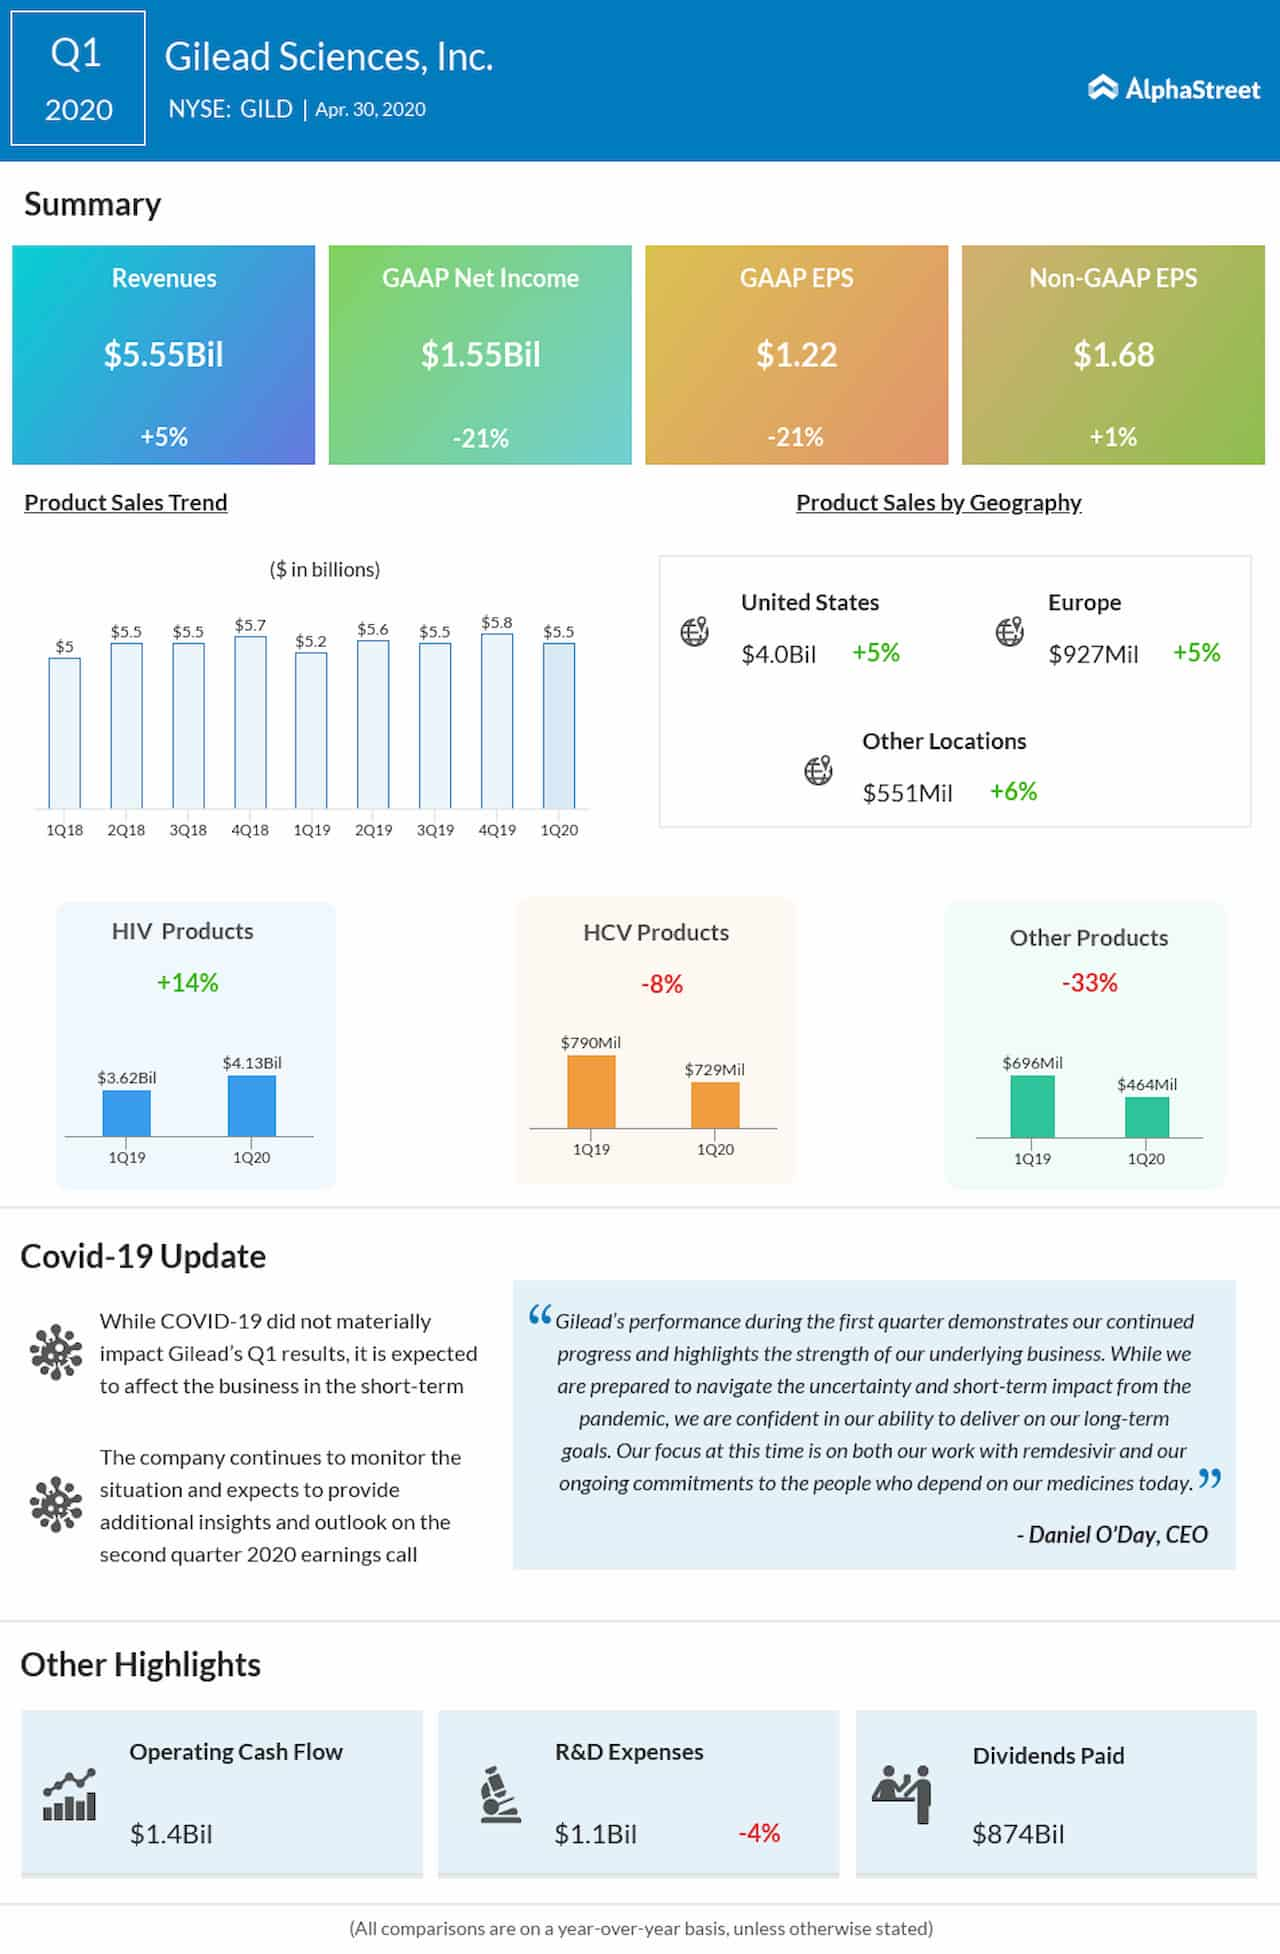 Gilead Sciences Q1 2020 earnings infographic